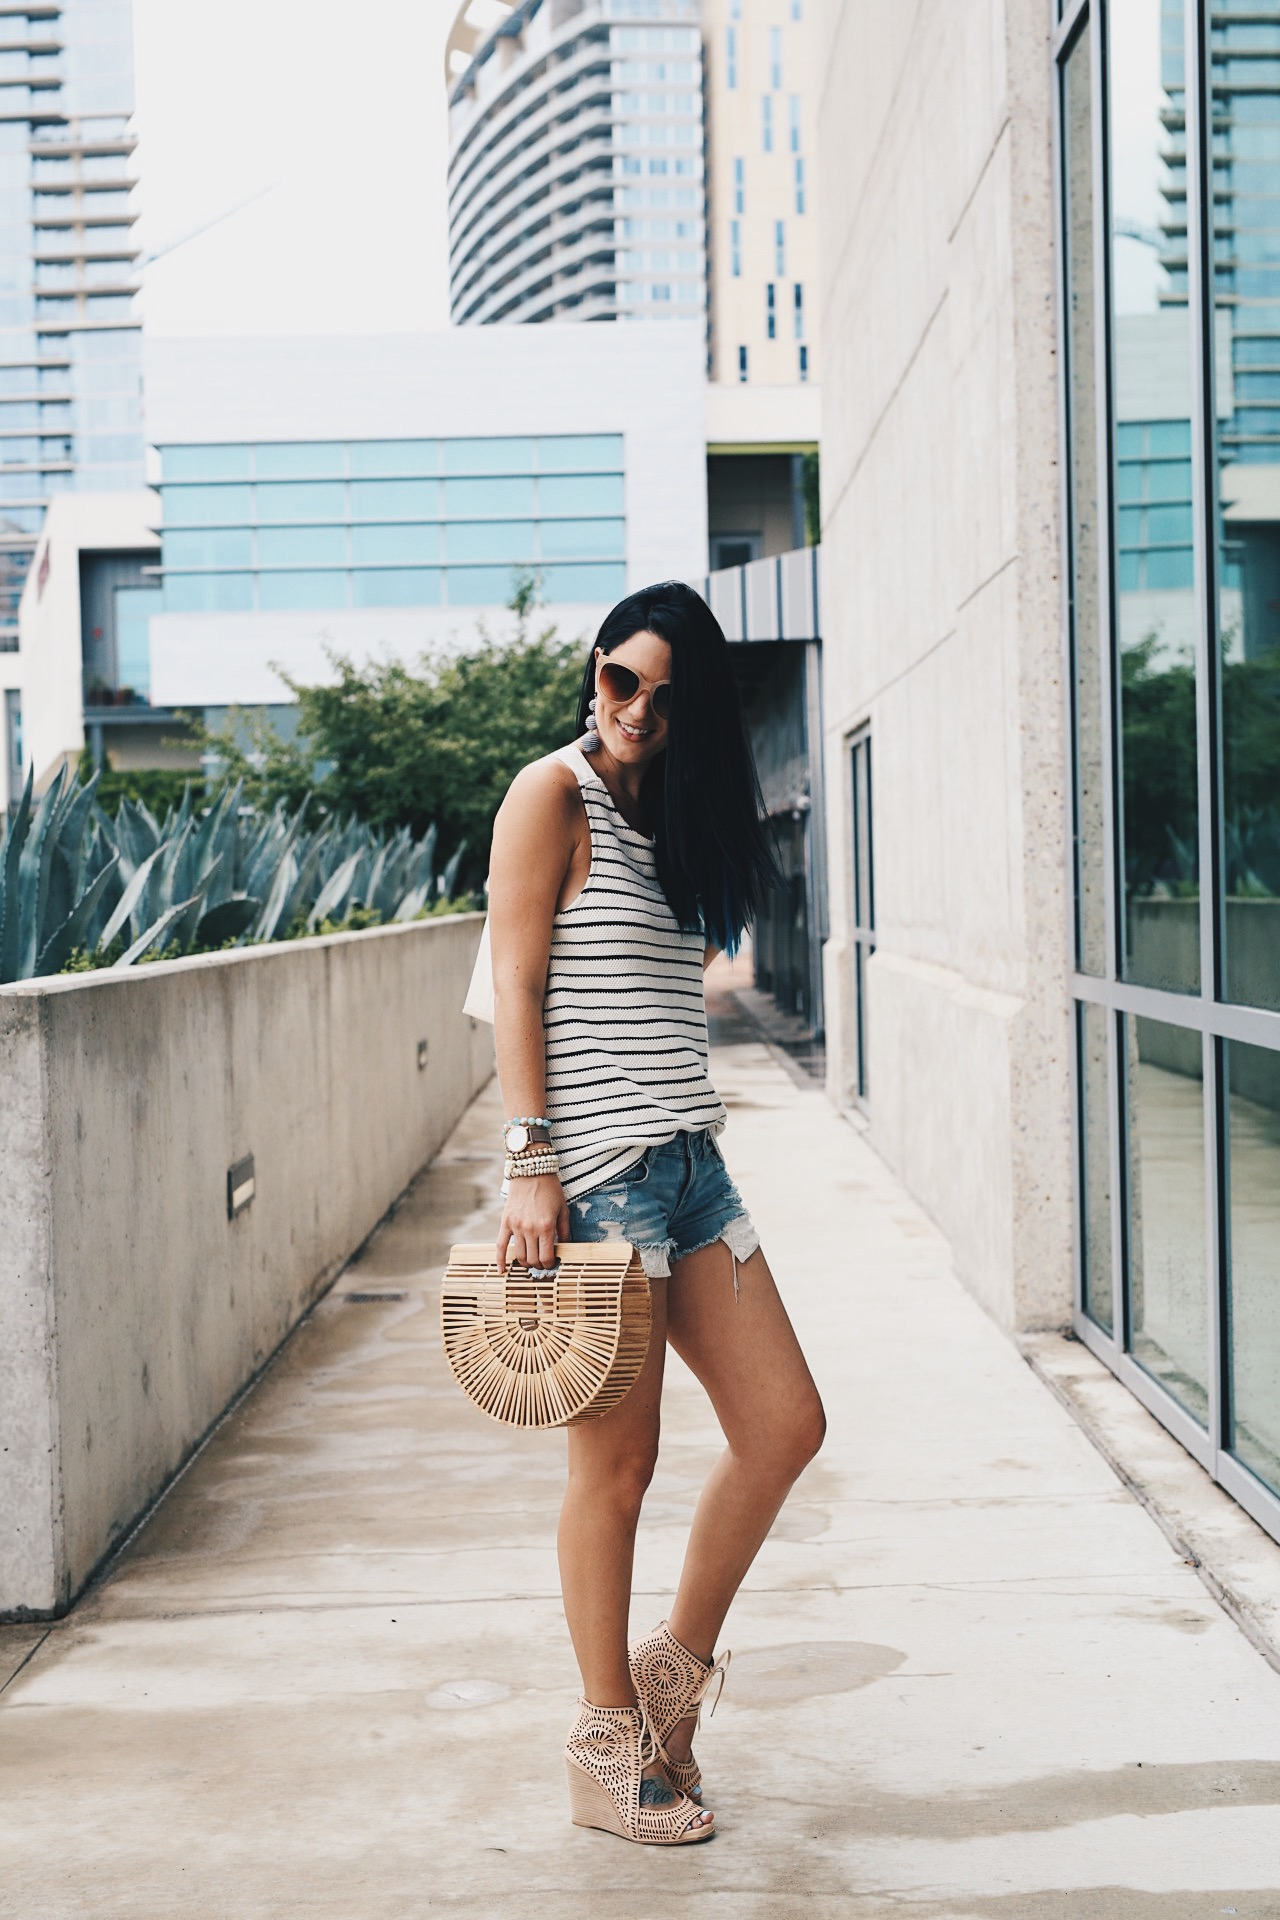 DTKAustin shares her tips and tricks to efficiently shop the Nordstrom Anniversary Sale, NSALE for 2017. Click for more information and photos. | how to style a waffle-knit top | how to wear a waffle-knit top | how to wear cutoff shorts | how to style cutoff shorts | waffle-knit top style tips | summer fashion tips | summer outfit ideas | summer style tips | what to wear for summer | warm weather fashion | fashion for summer | style tips for summer | outfit ideas for summer || Dressed to Kill